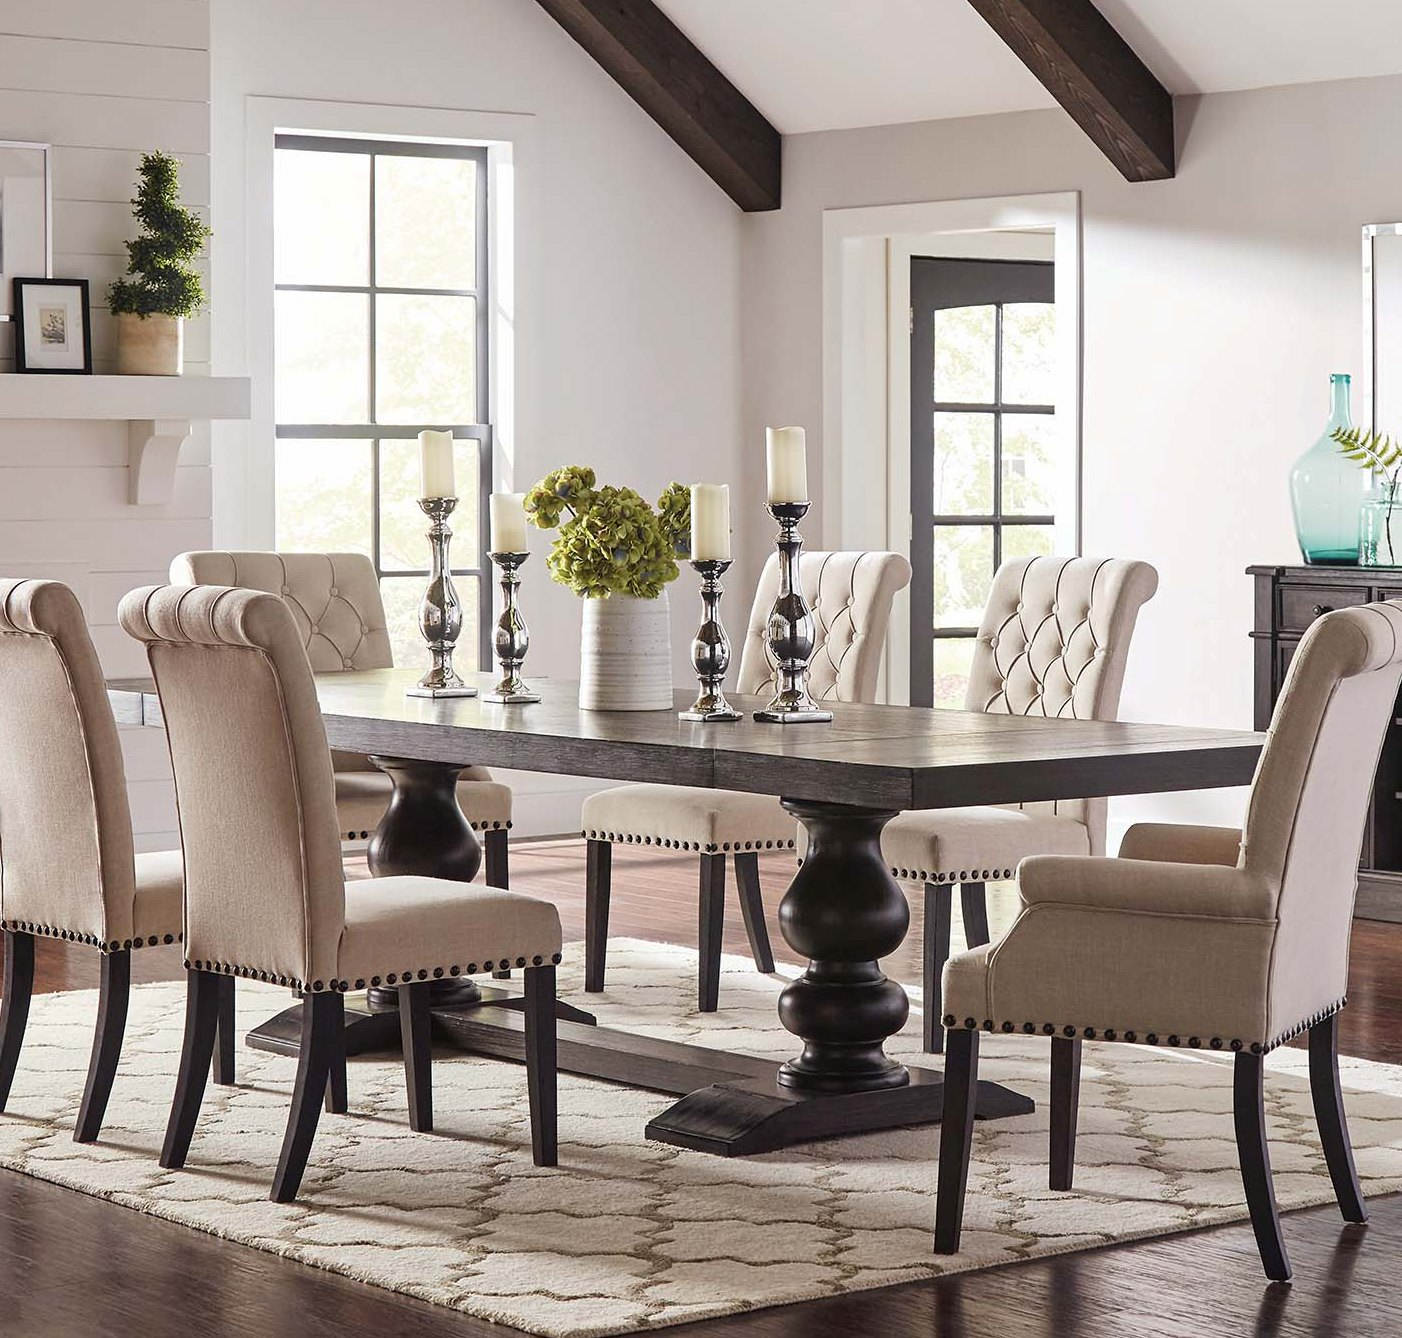 Coaster Furniture Phelps Antique Noir Dining Table The Classy Home